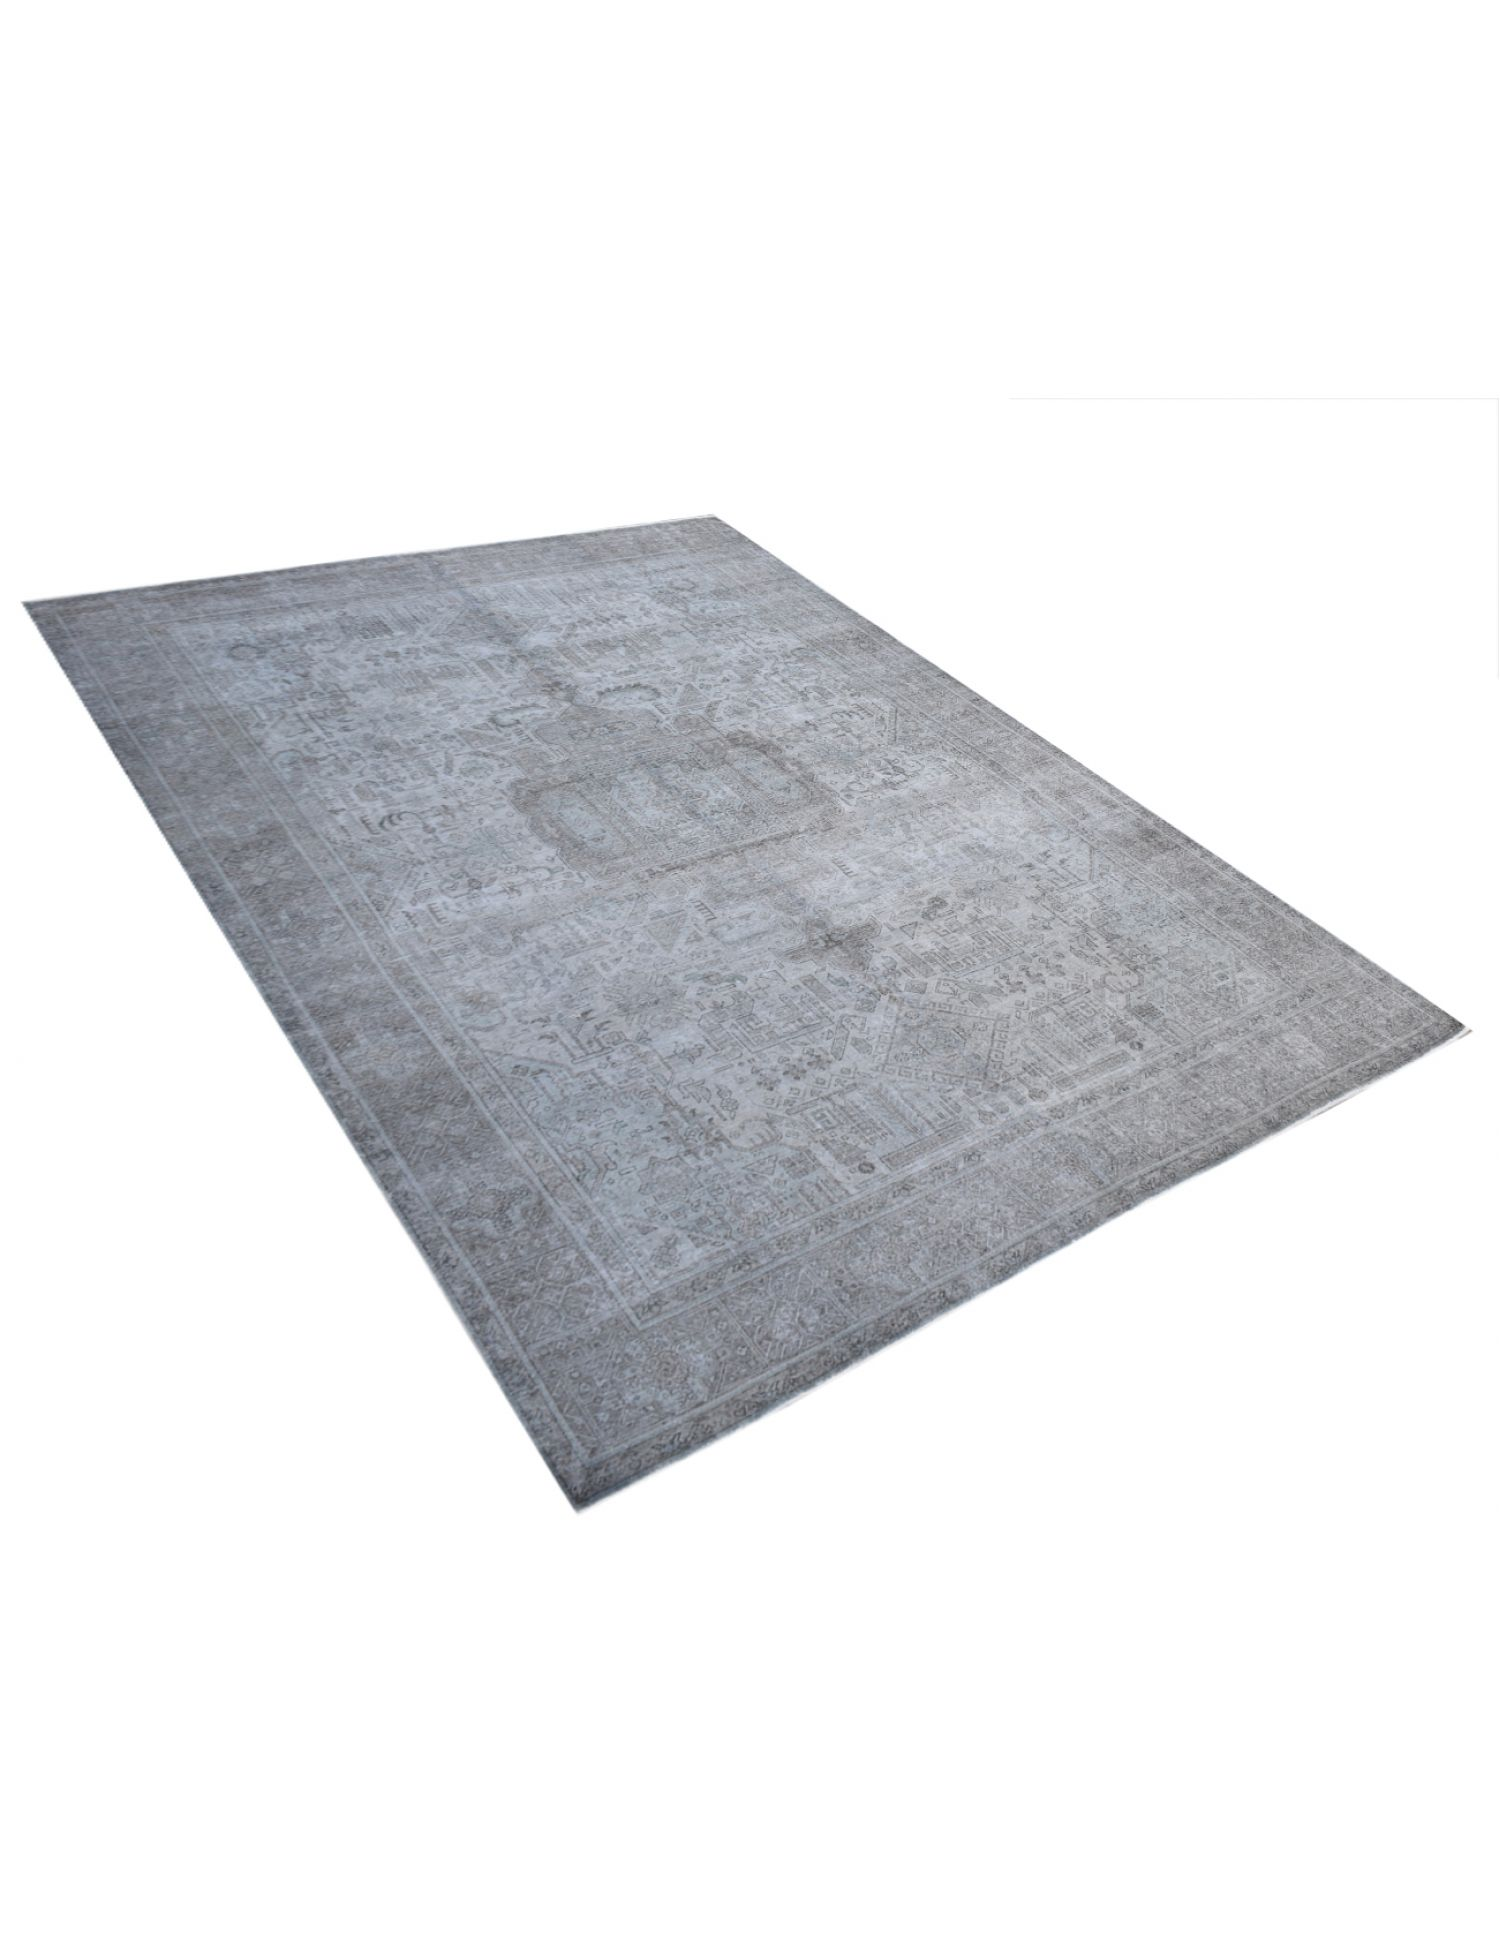 Vintage Carpet  grey <br/>360 x 280 cm